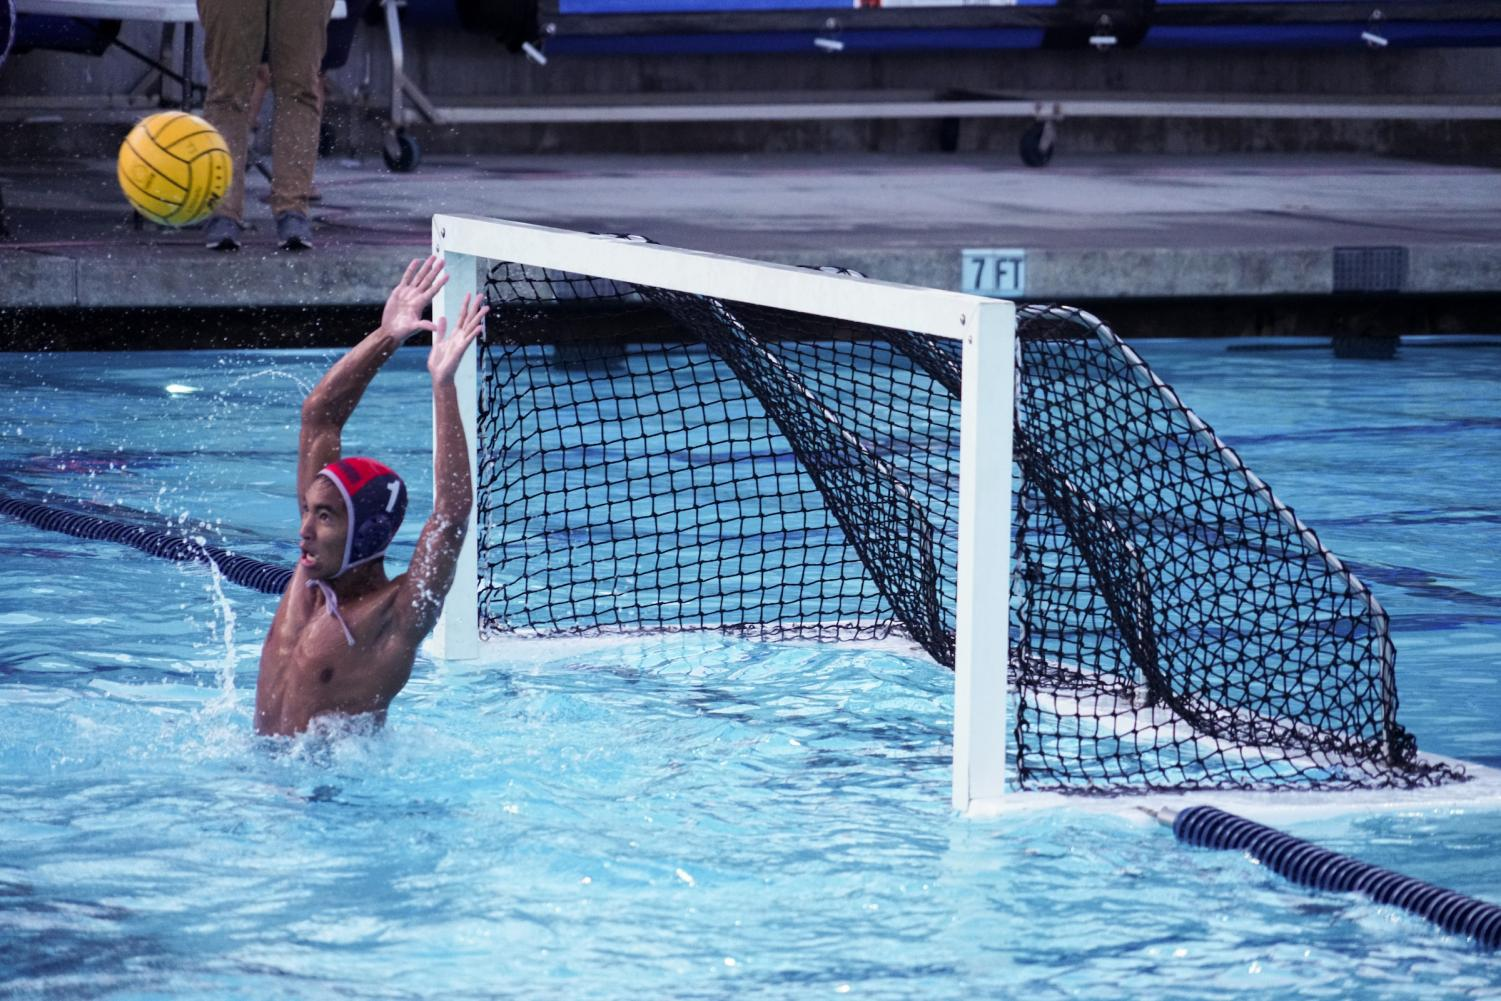 REJECTED!: Eyes on the ball and hands ready, senior goalie Adrian Fontao deflects the other team's shot.